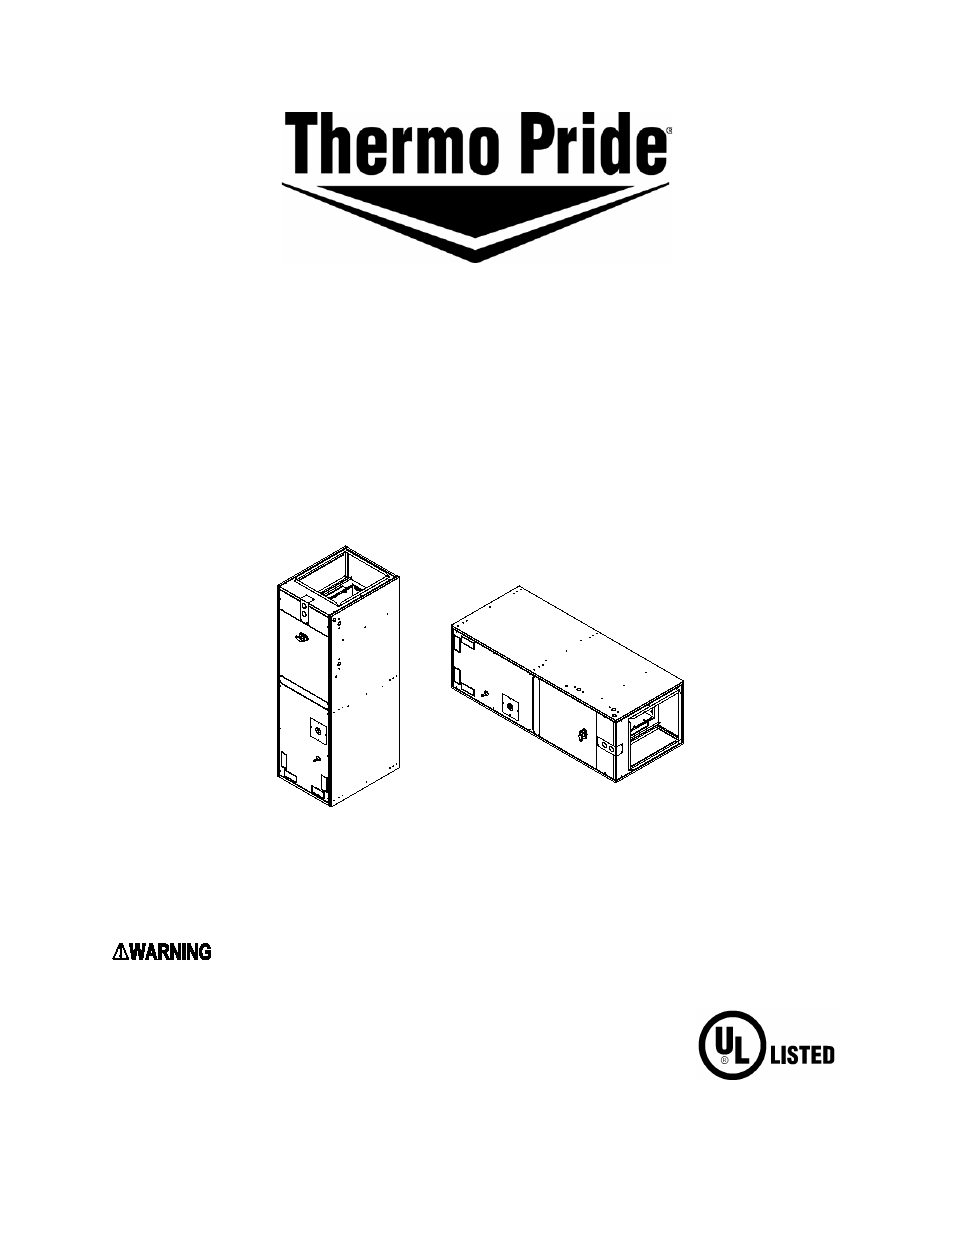 Thermo Pride Air Handlers ECM Blower 13/14 SEER (AH2) User